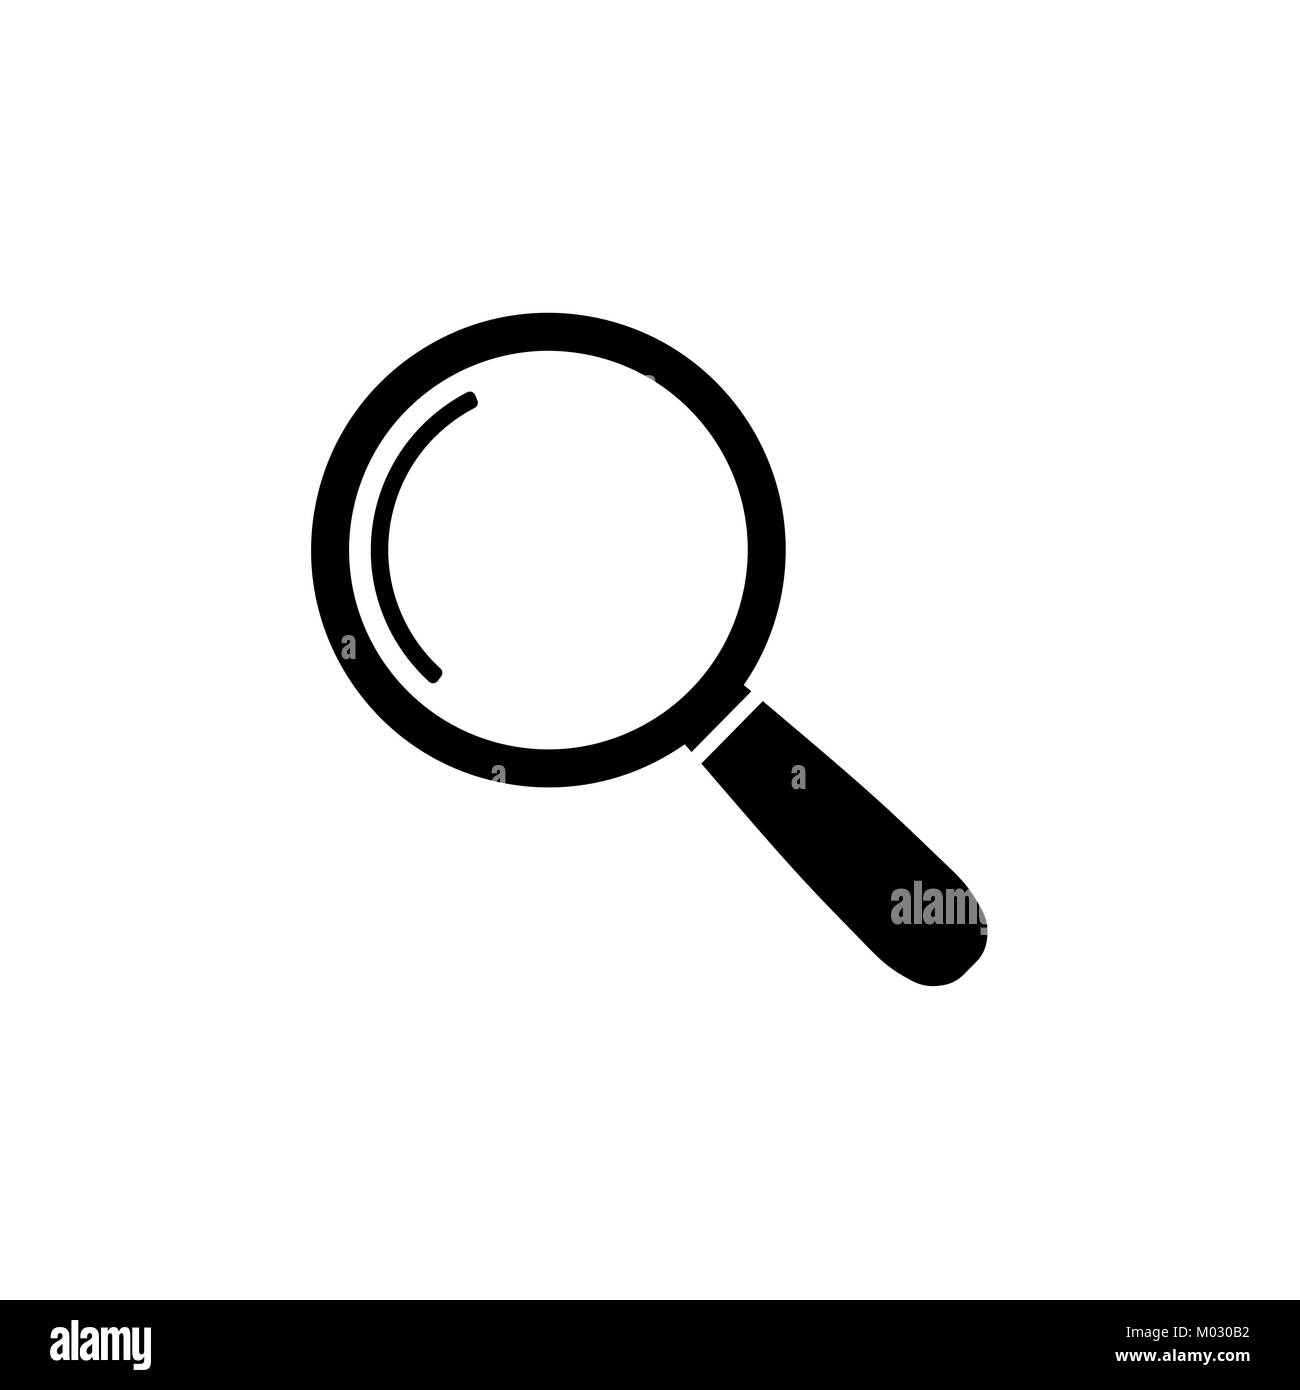 Magnify icon. Magnifying glass sign. Search icon - Stock Image